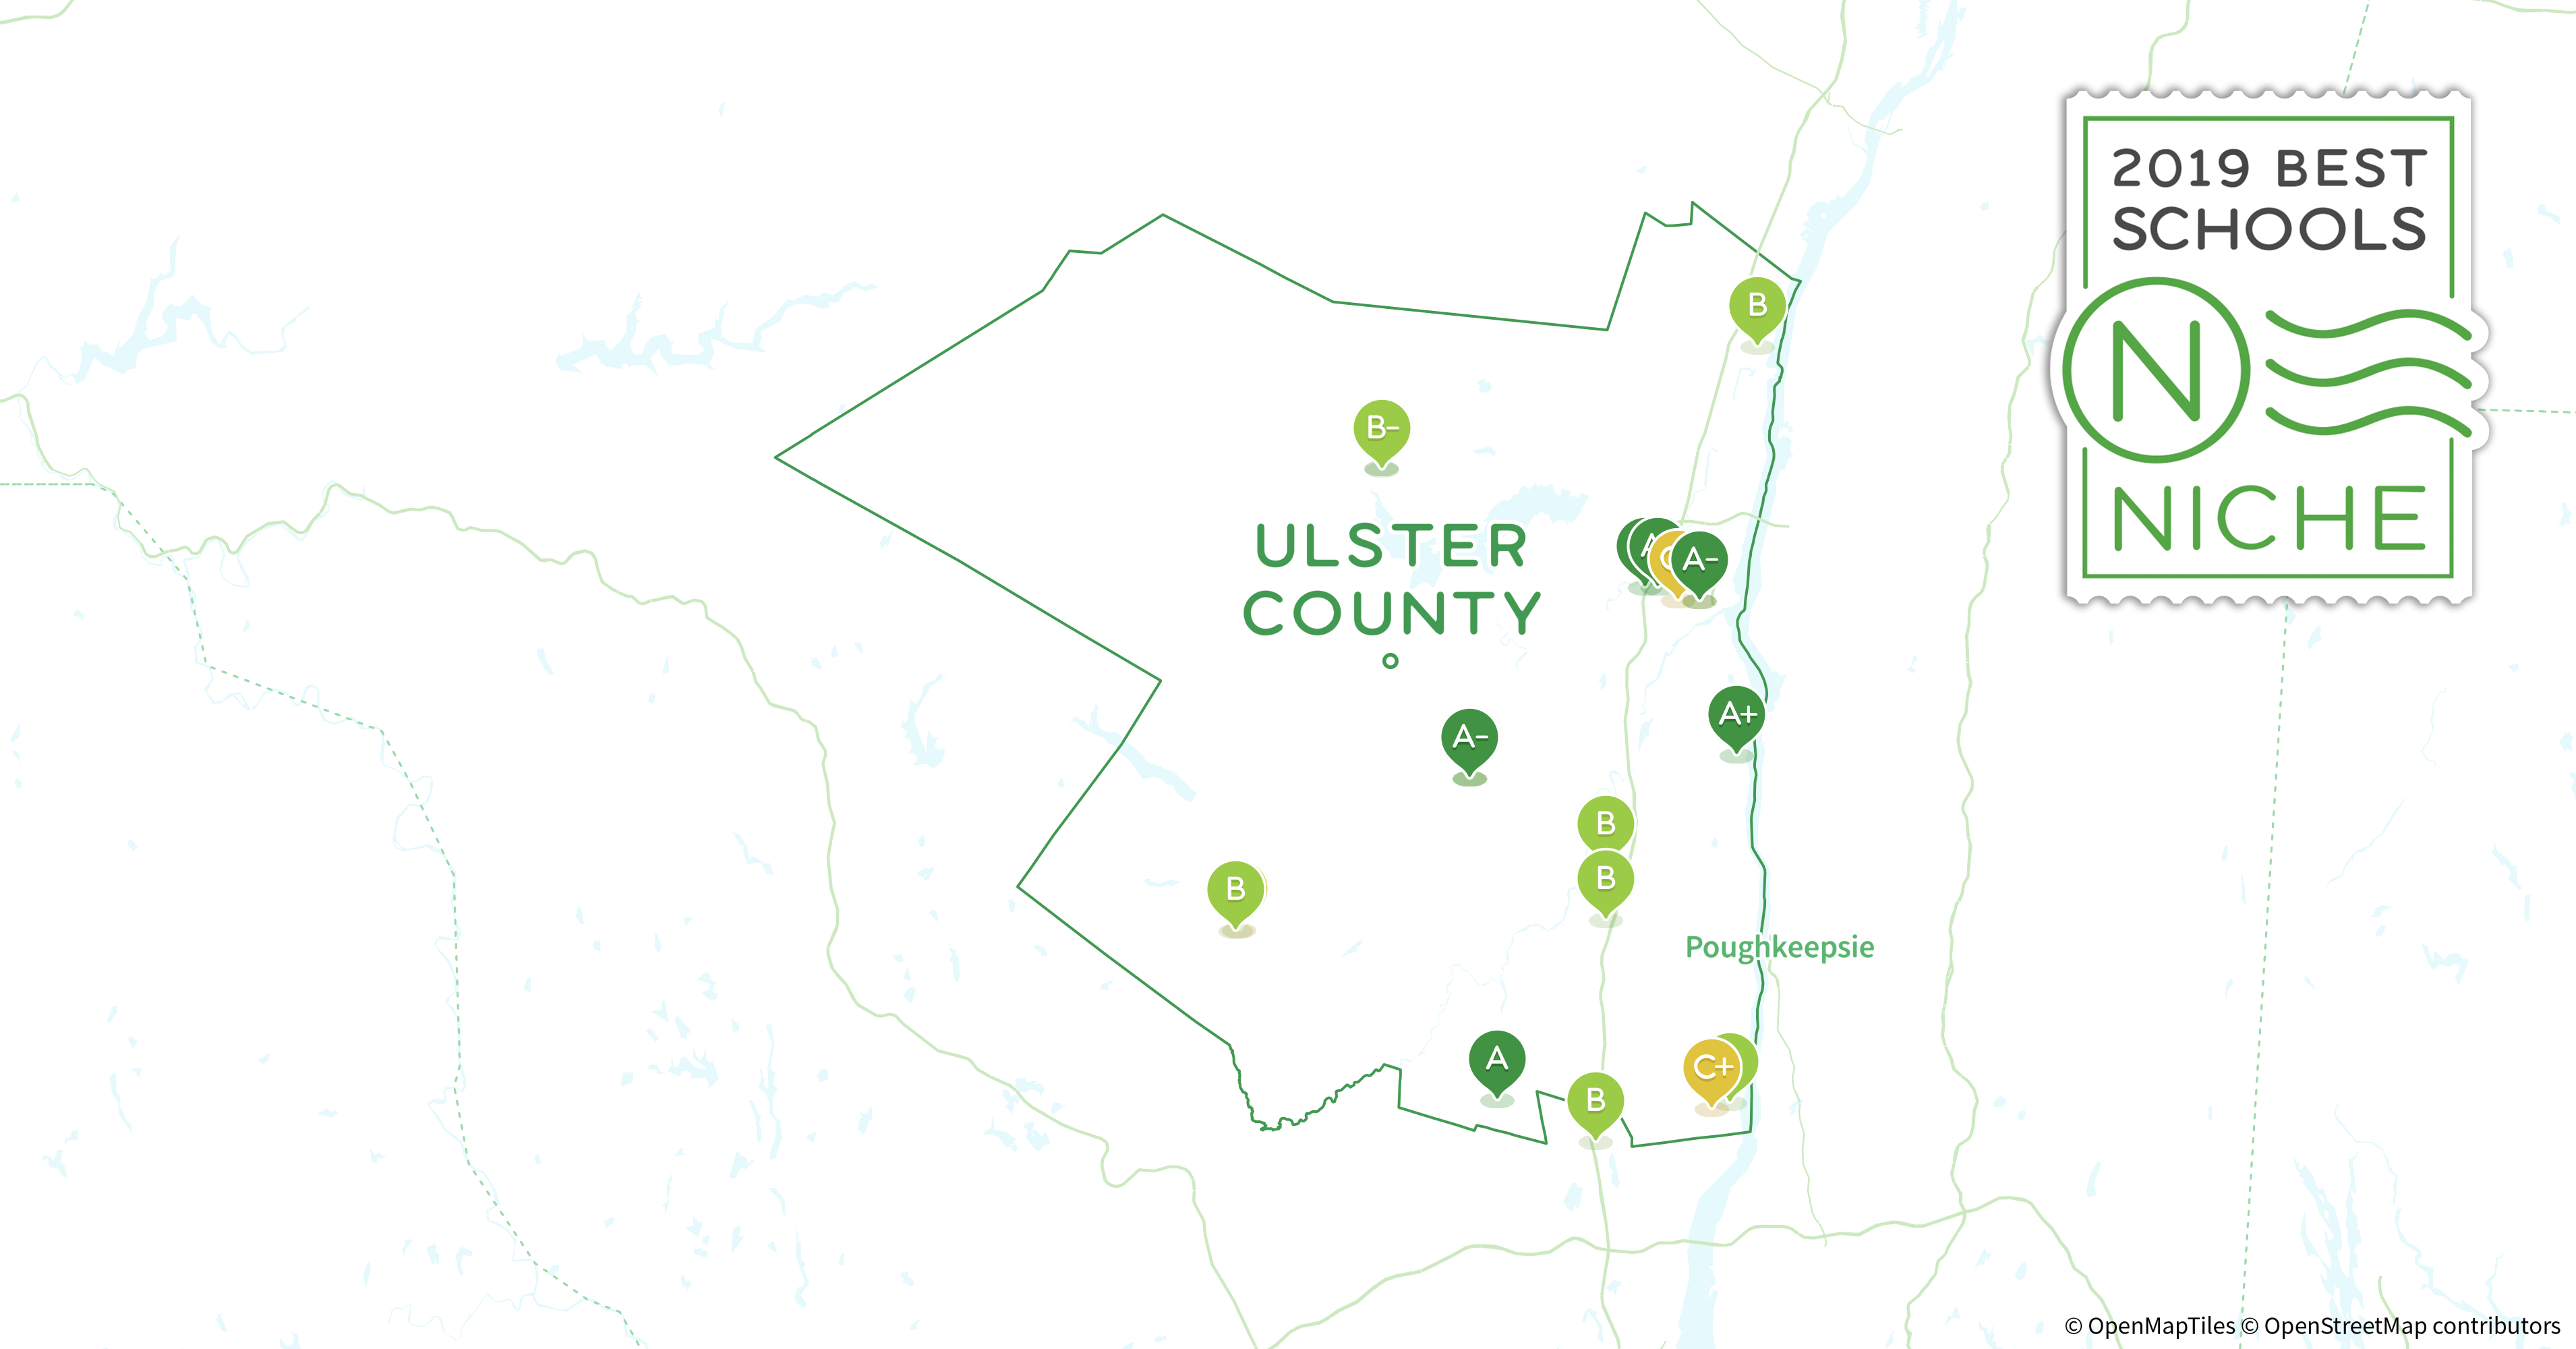 Ulster County New York Map.School Districts In Ulster County Ny Niche